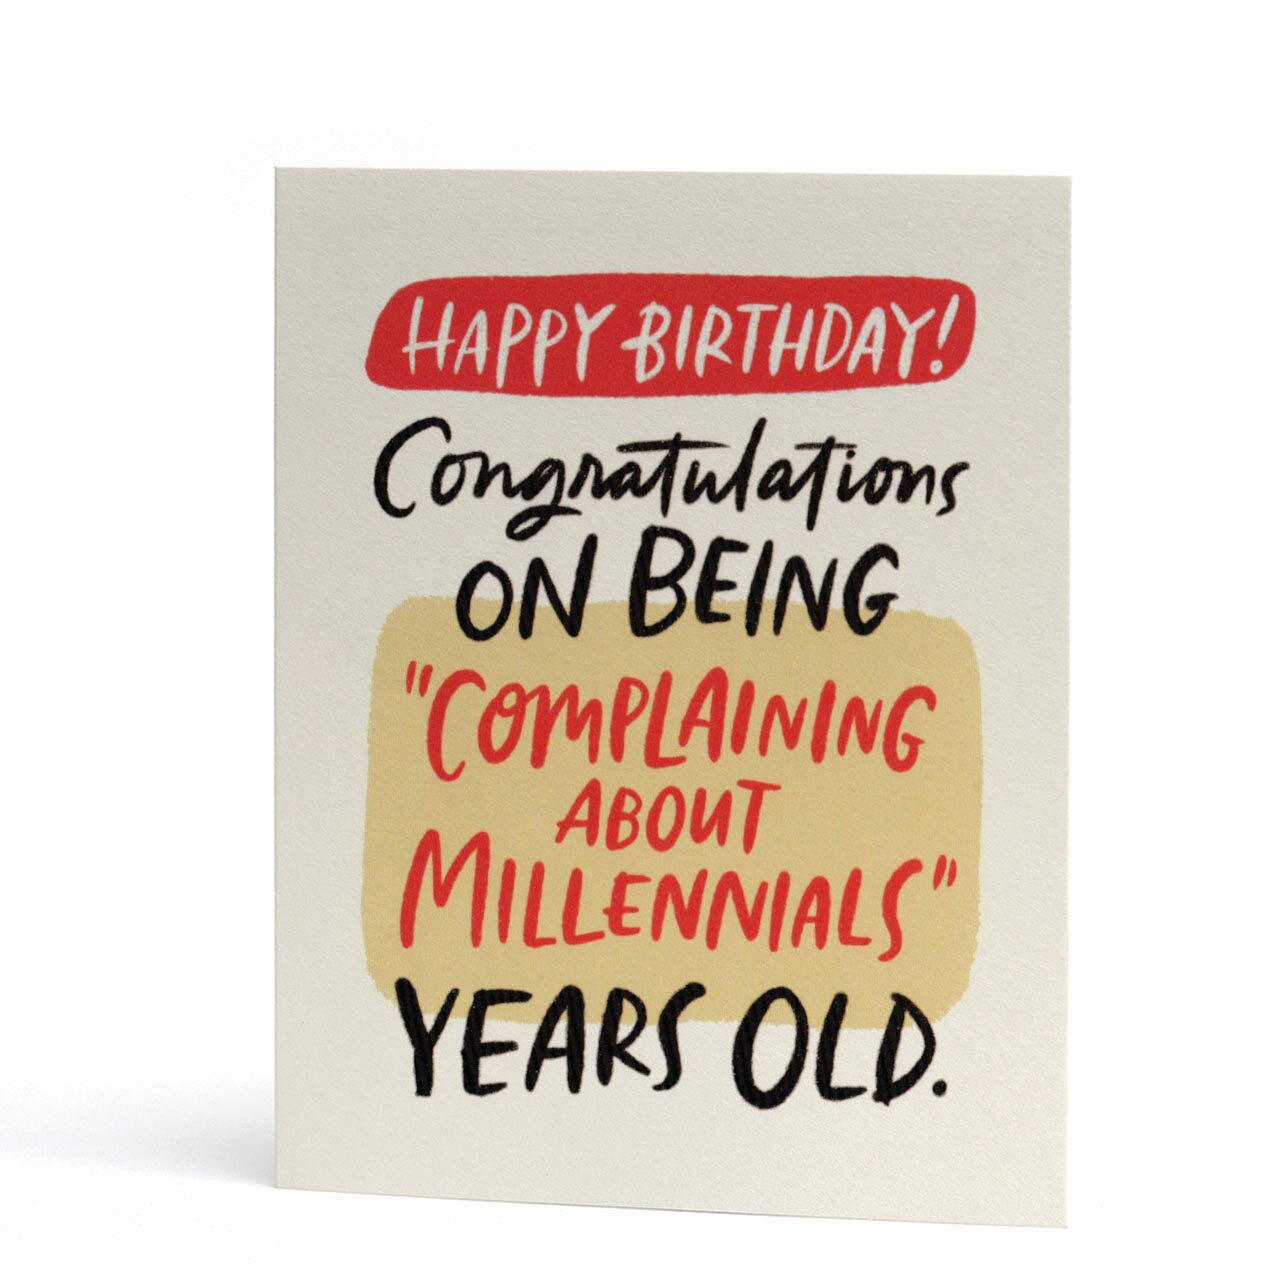 Complaining About Millennials Years Old Greeting Card